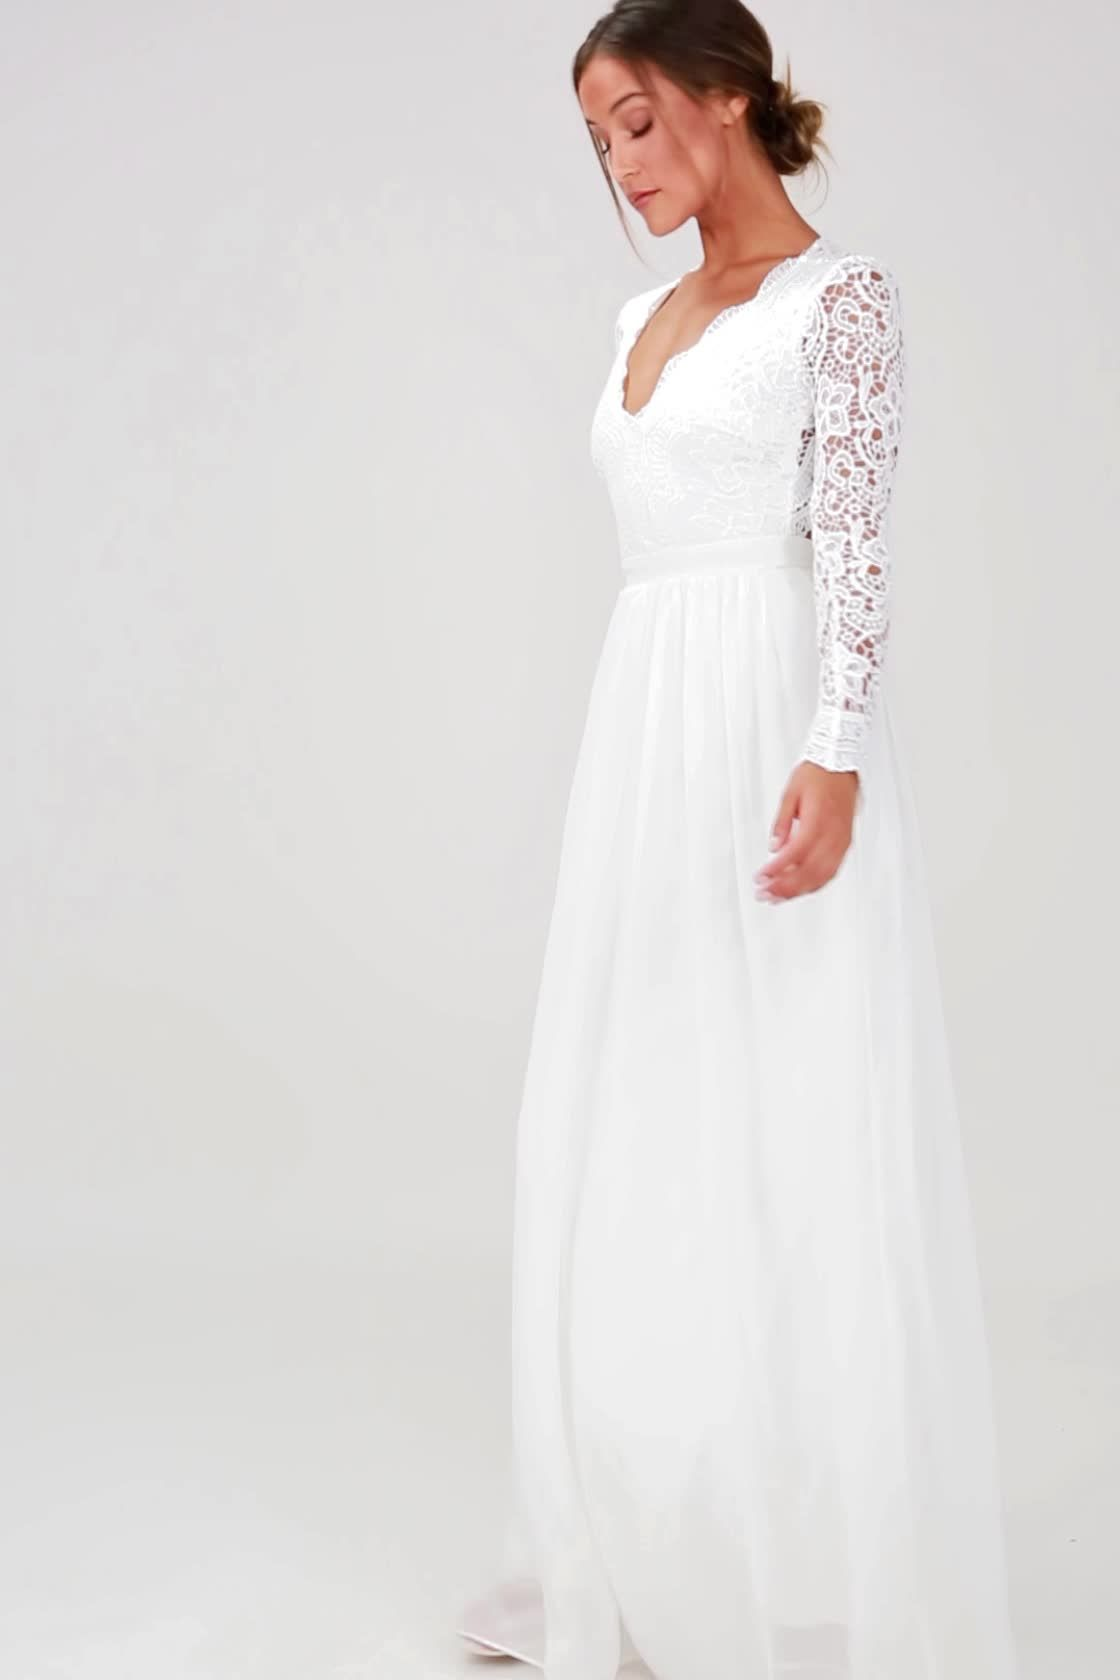 546a69025c7d Awaken My Love White Long Sleeve Lace Maxi Dress in 2019 | Dresses ...